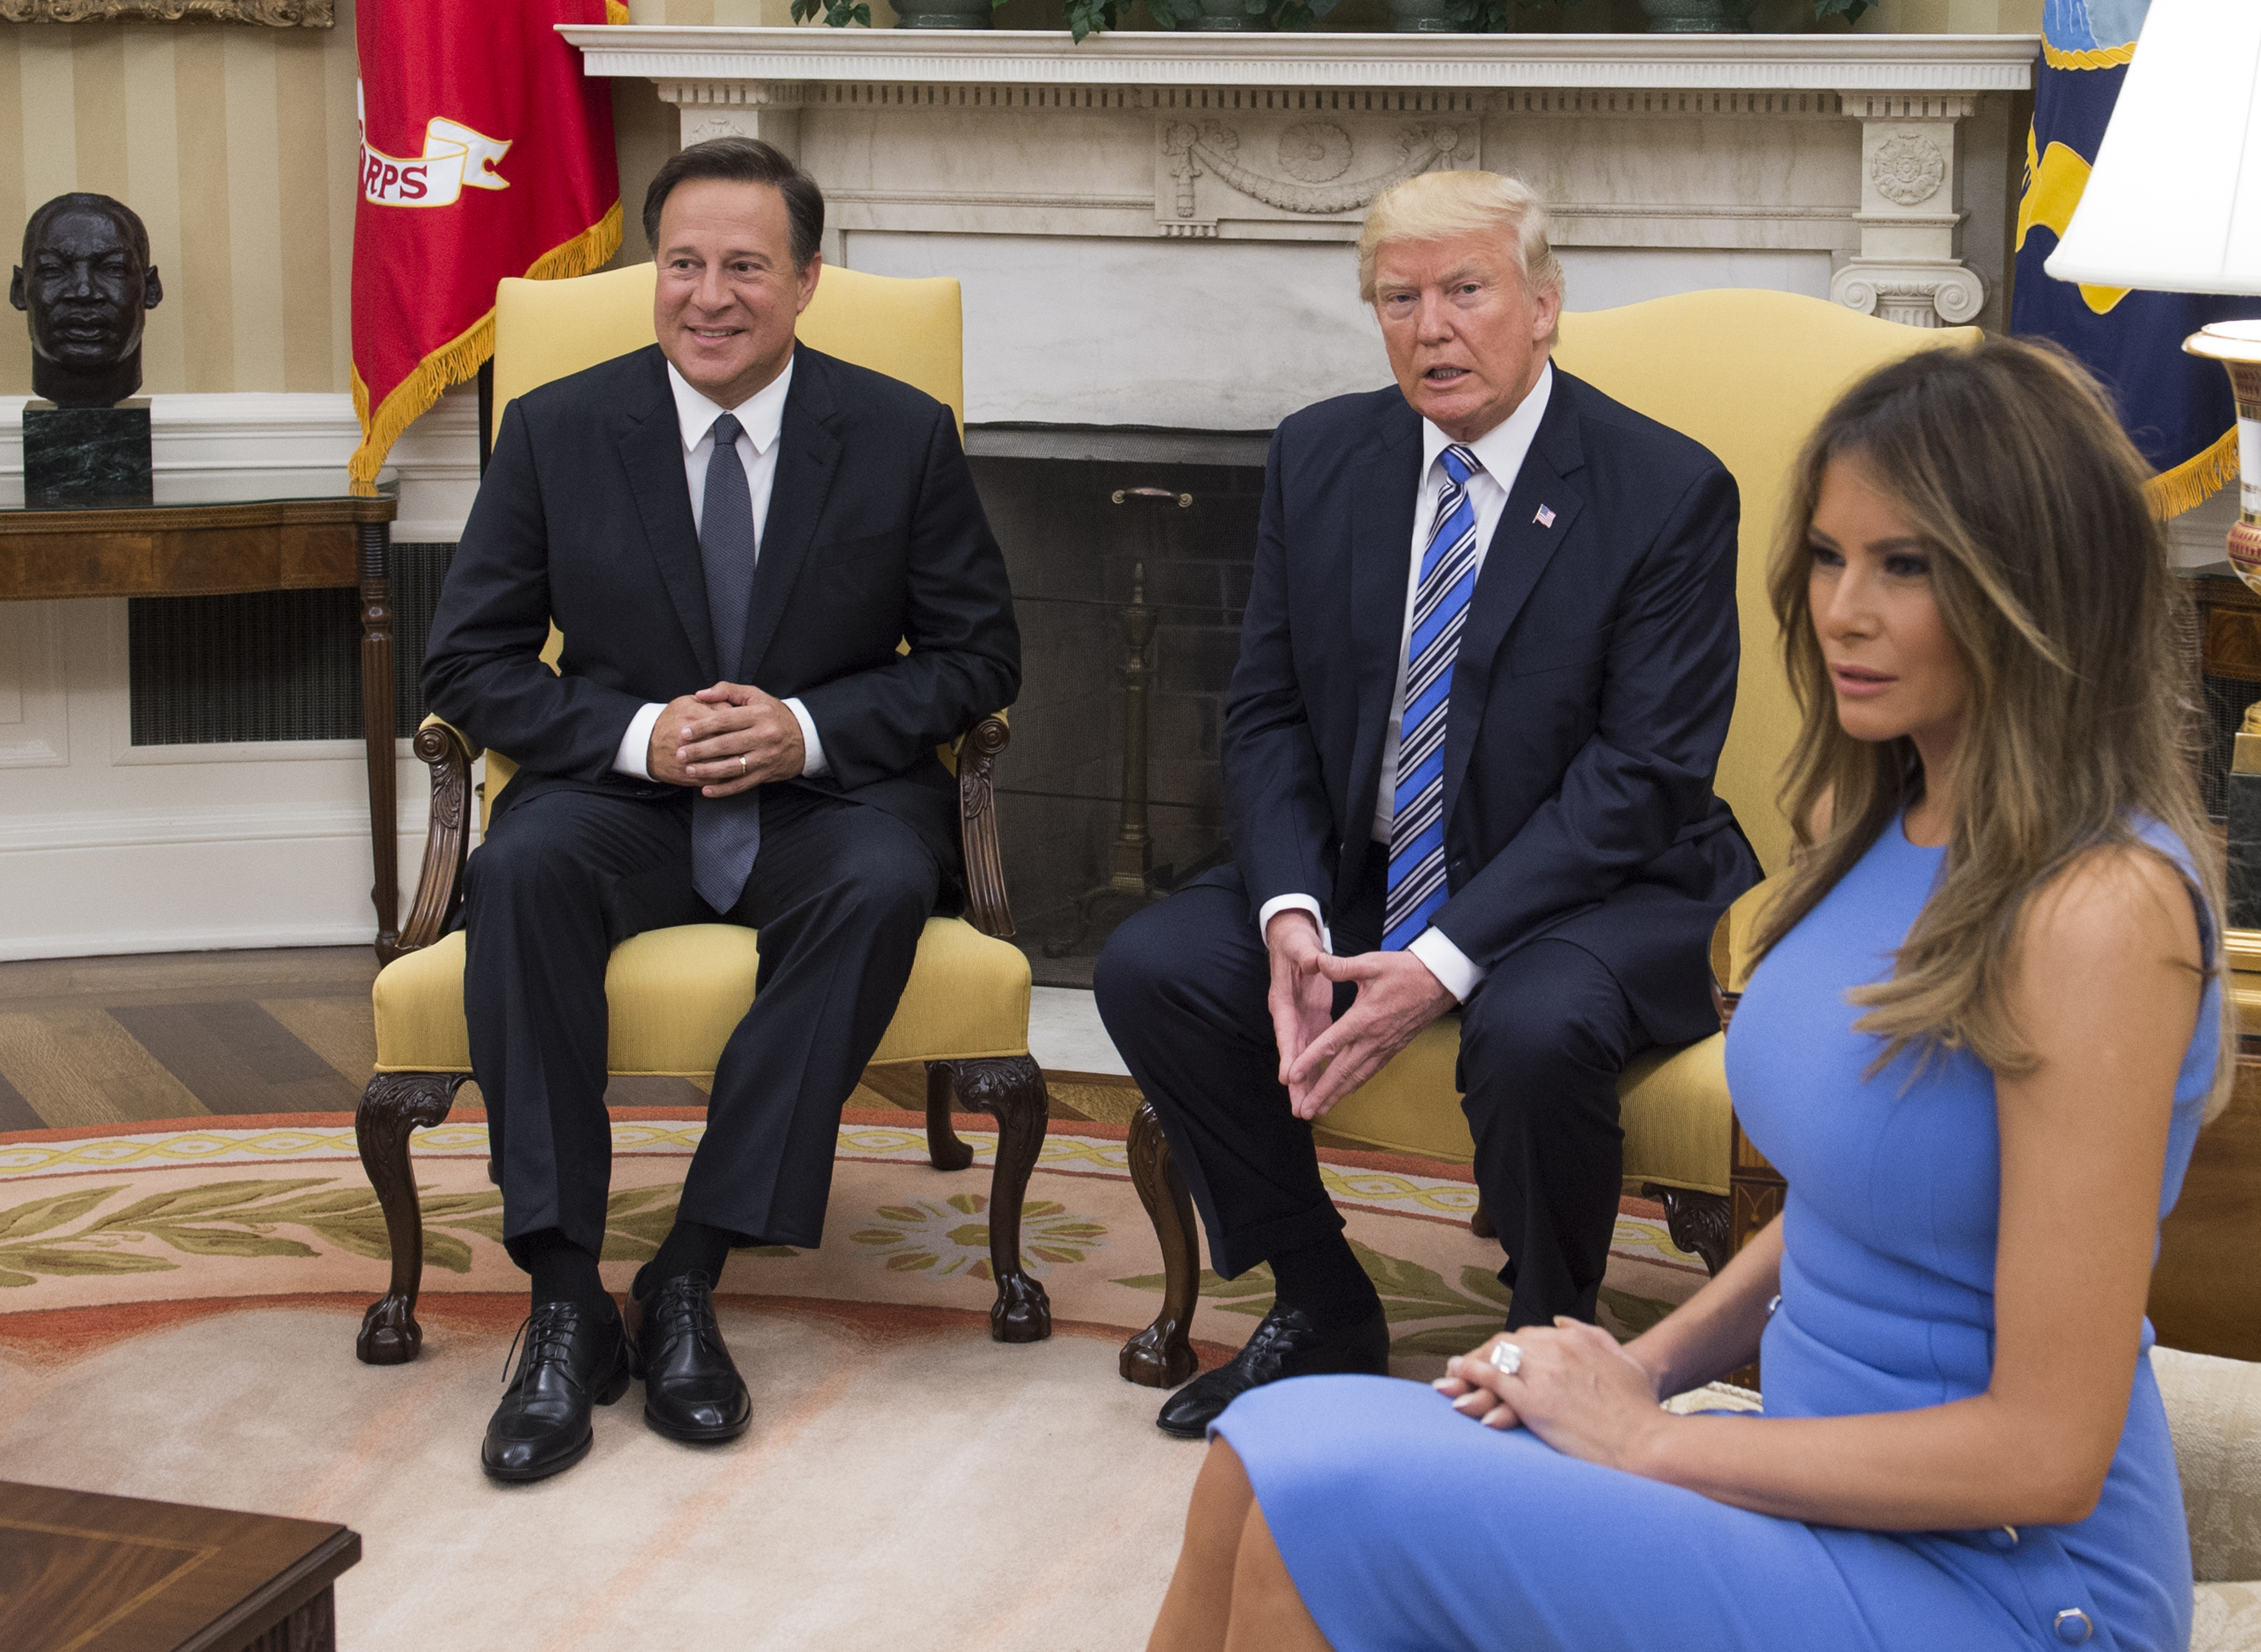 President Donald Trump meets with Panama's President Juan Carlos Varela in the Oval Office, with first lady Melania Trump, at the White House on June 19, 2017 in Washington, DC. According to the White House, the two presidents will talk about how to curb  transnational organized crime, illegal migration, and illicit substances   and the continued political and economic instability in Venezuela.